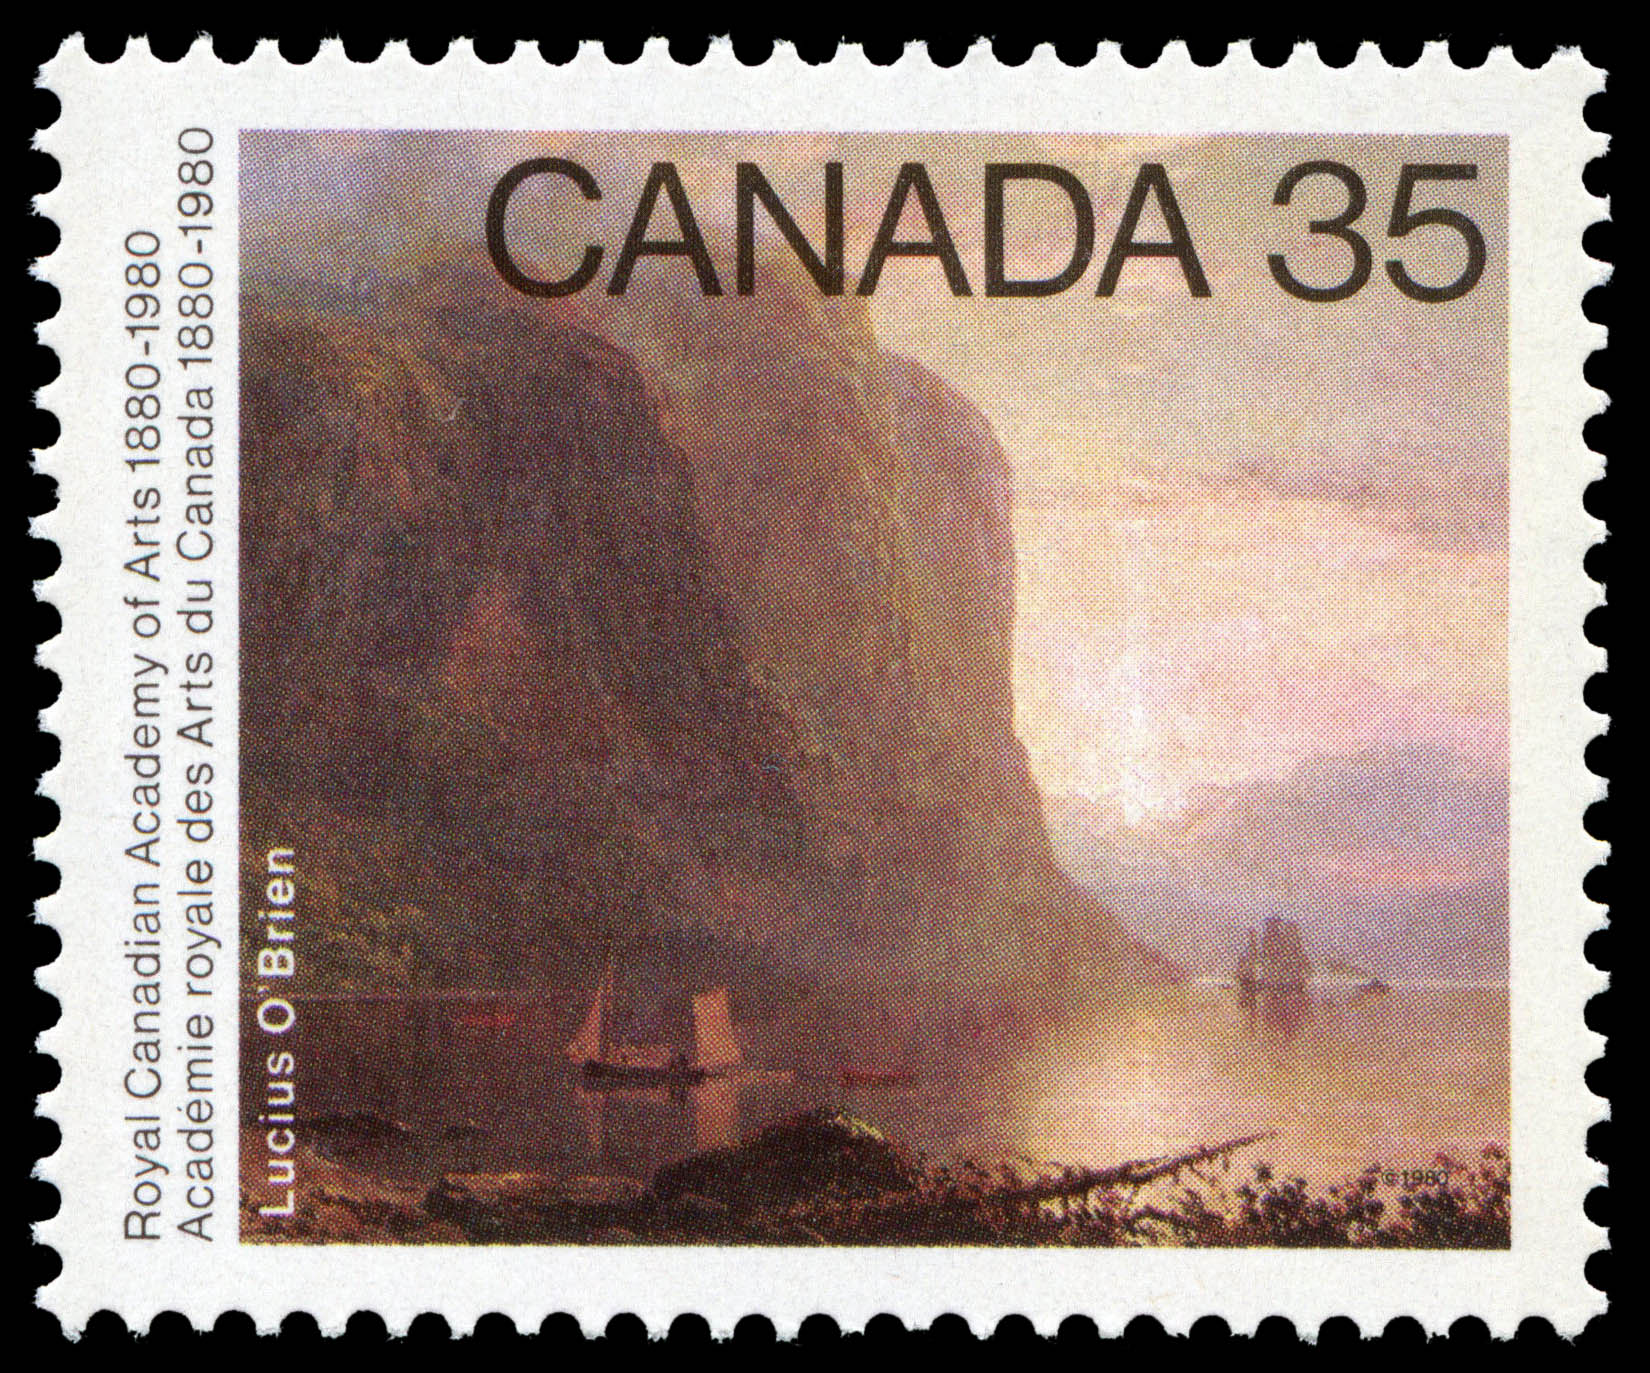 Lucius Richard O'Brien, Sunrise on the Saguenay Canada Postage Stamp | Royal Canadian Academy of Arts, 1880-1980